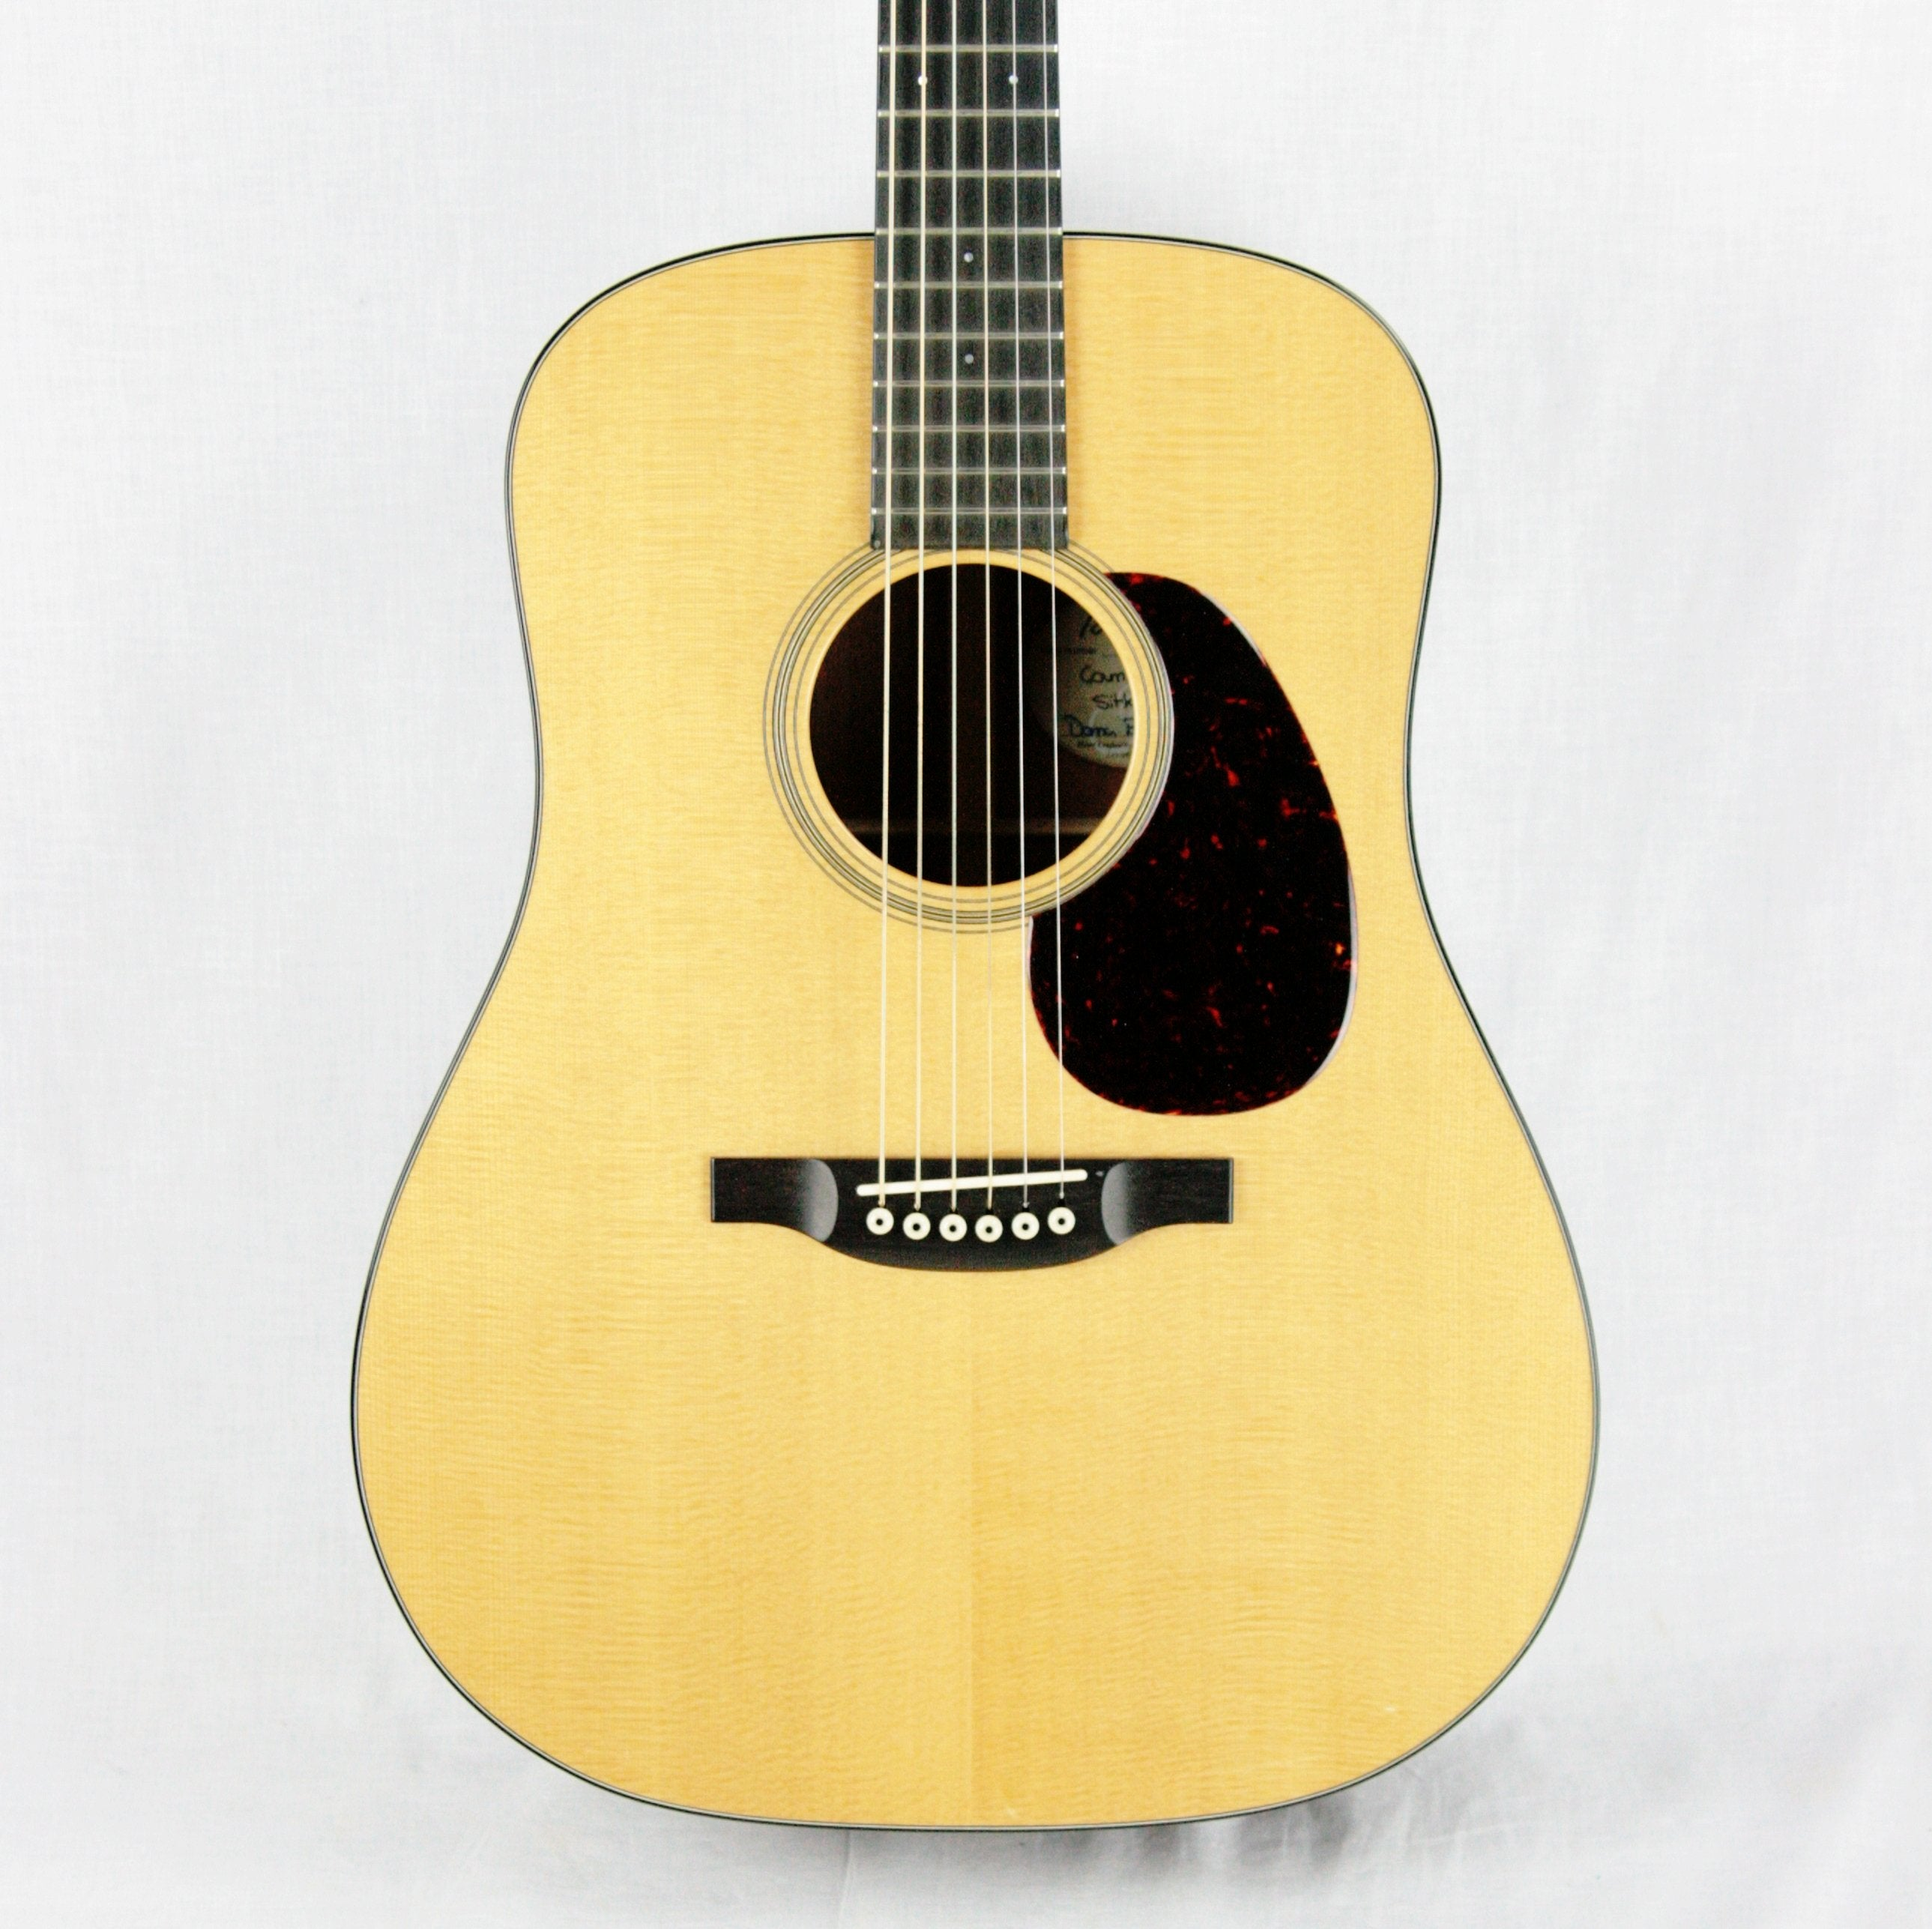 2007 Bourgeois D Country Boy Dreadnought Sitka Top Mahogany Back/Sides D18